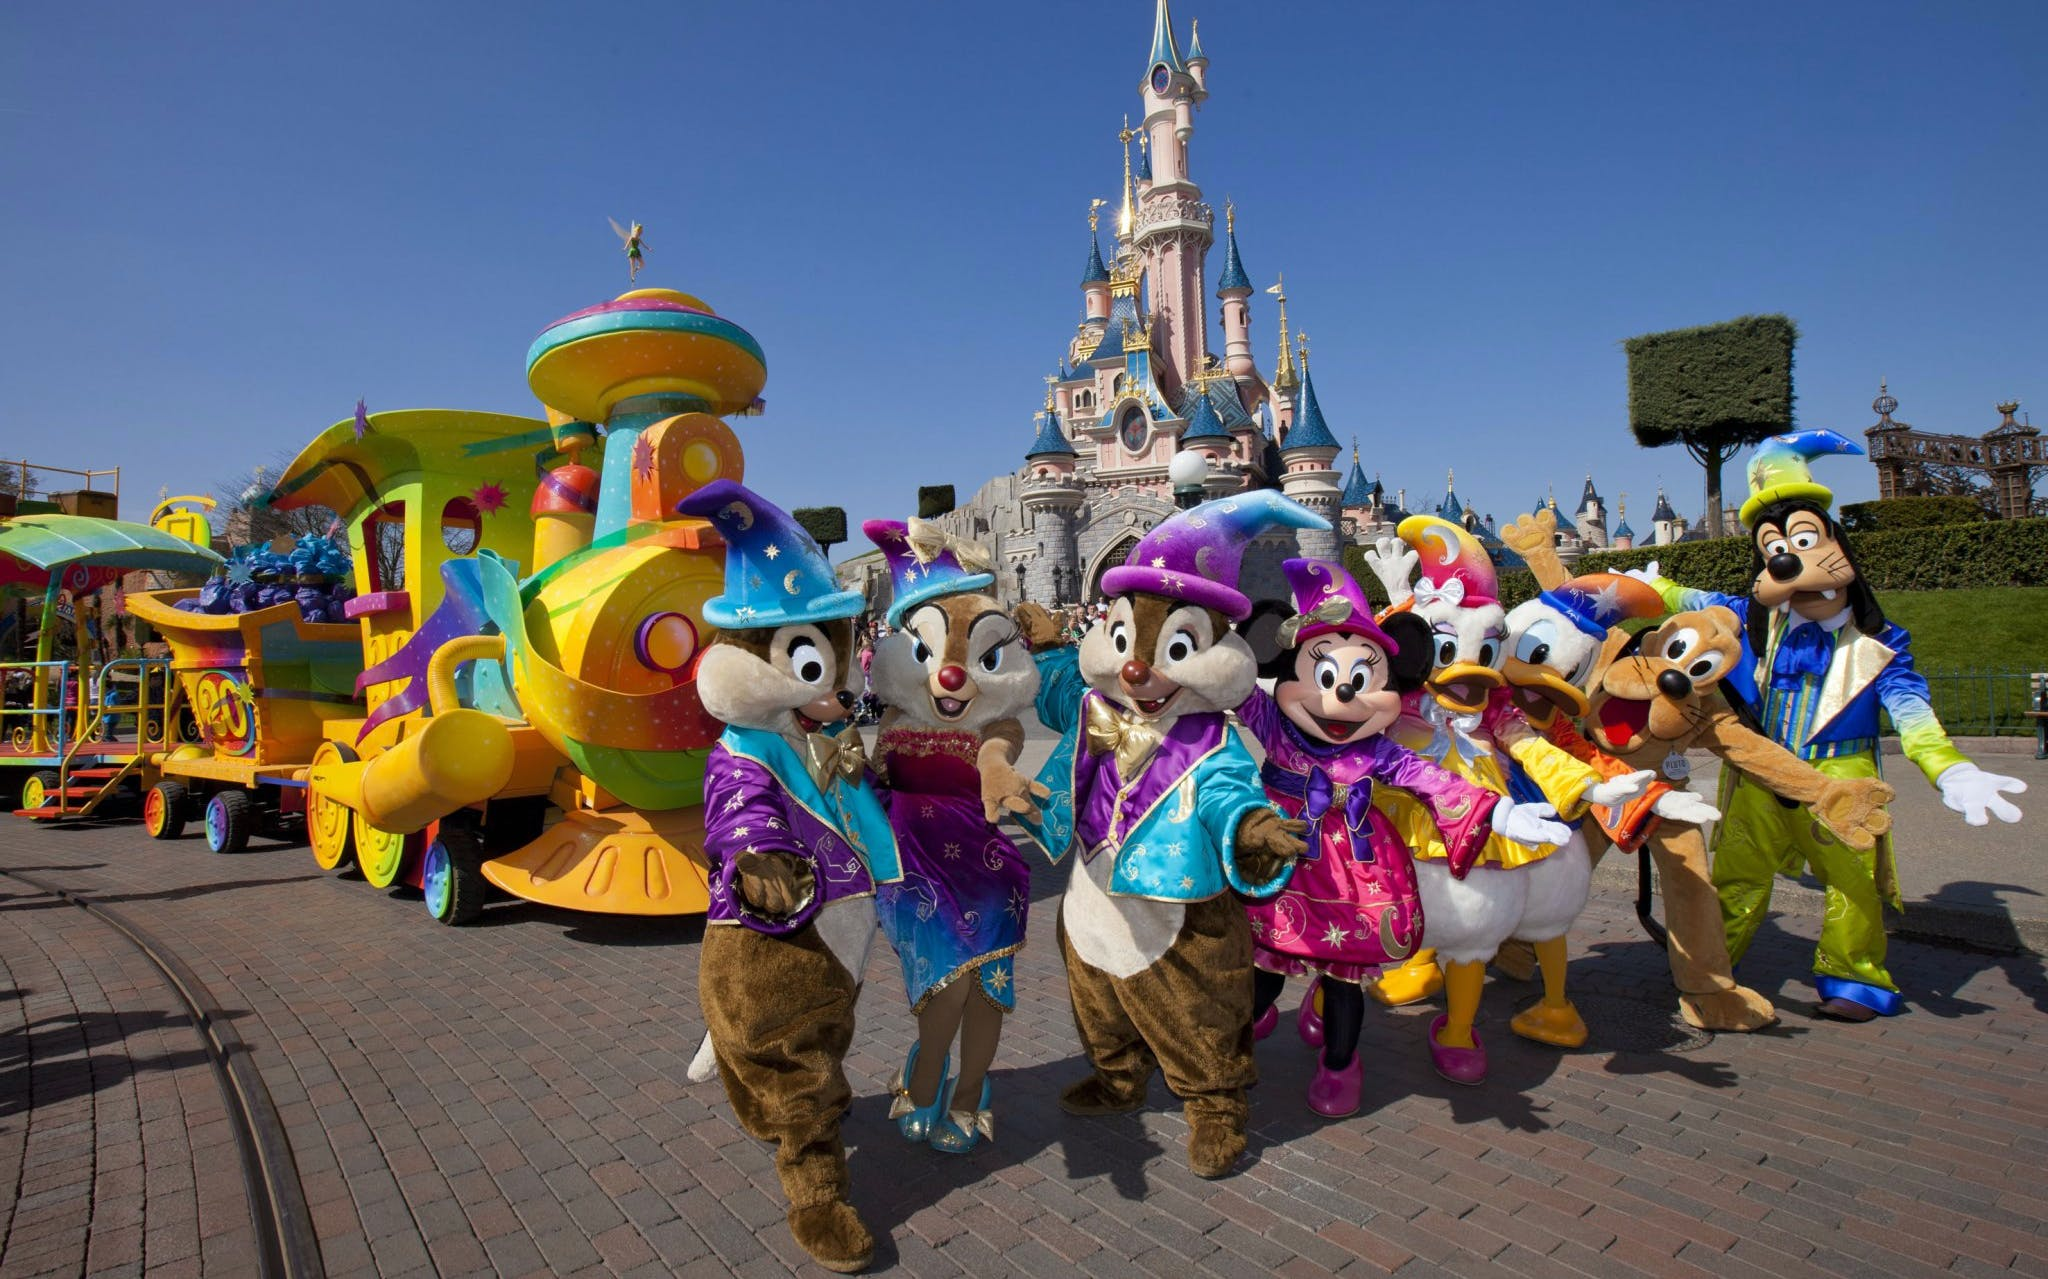 Best Things to do in Paris - Disneyland Paris